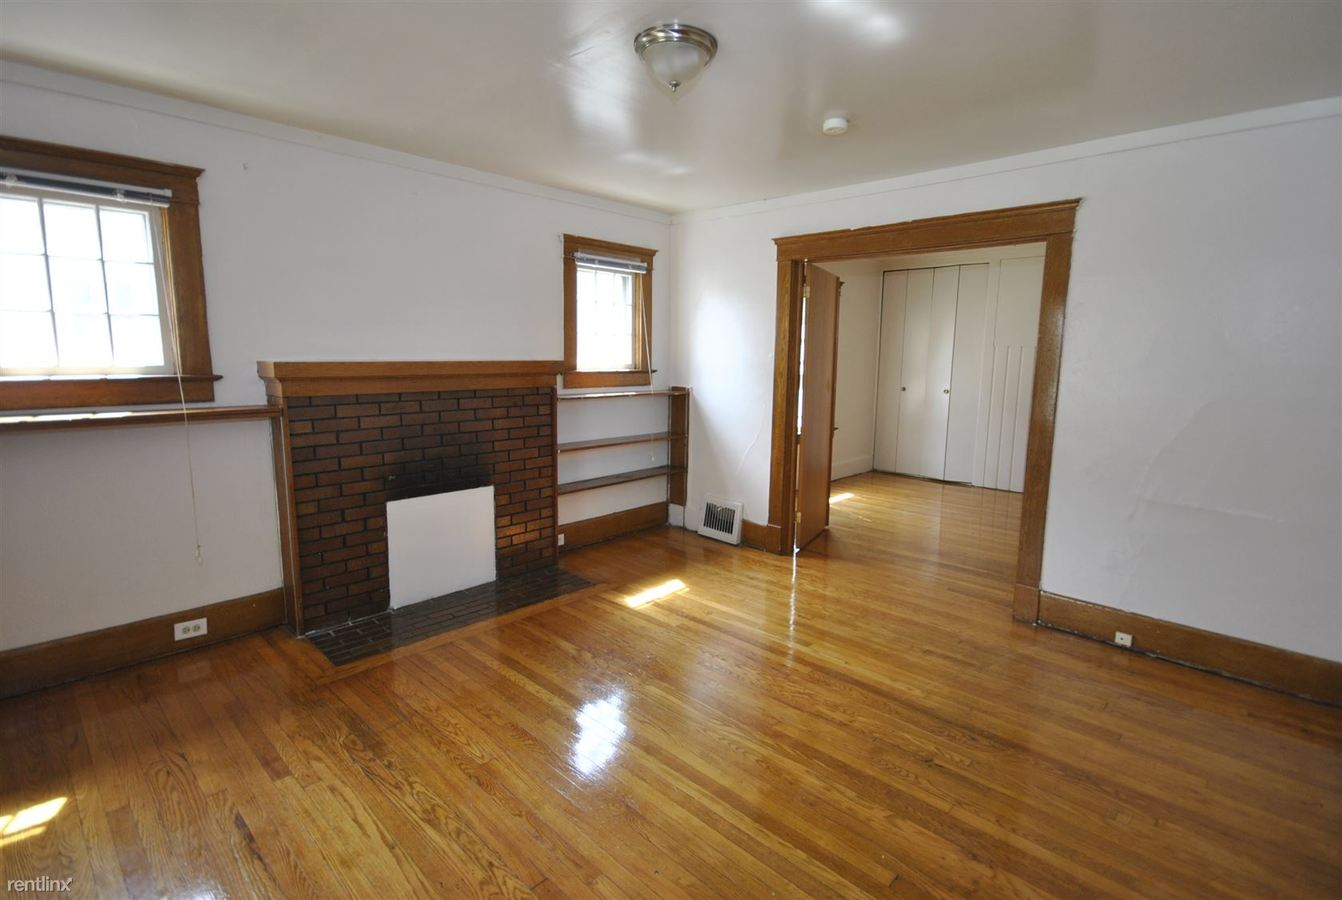 1 Bedroom 1 Bathroom Apartment for rent at 912 Sybil St in Ann Arbor, MI